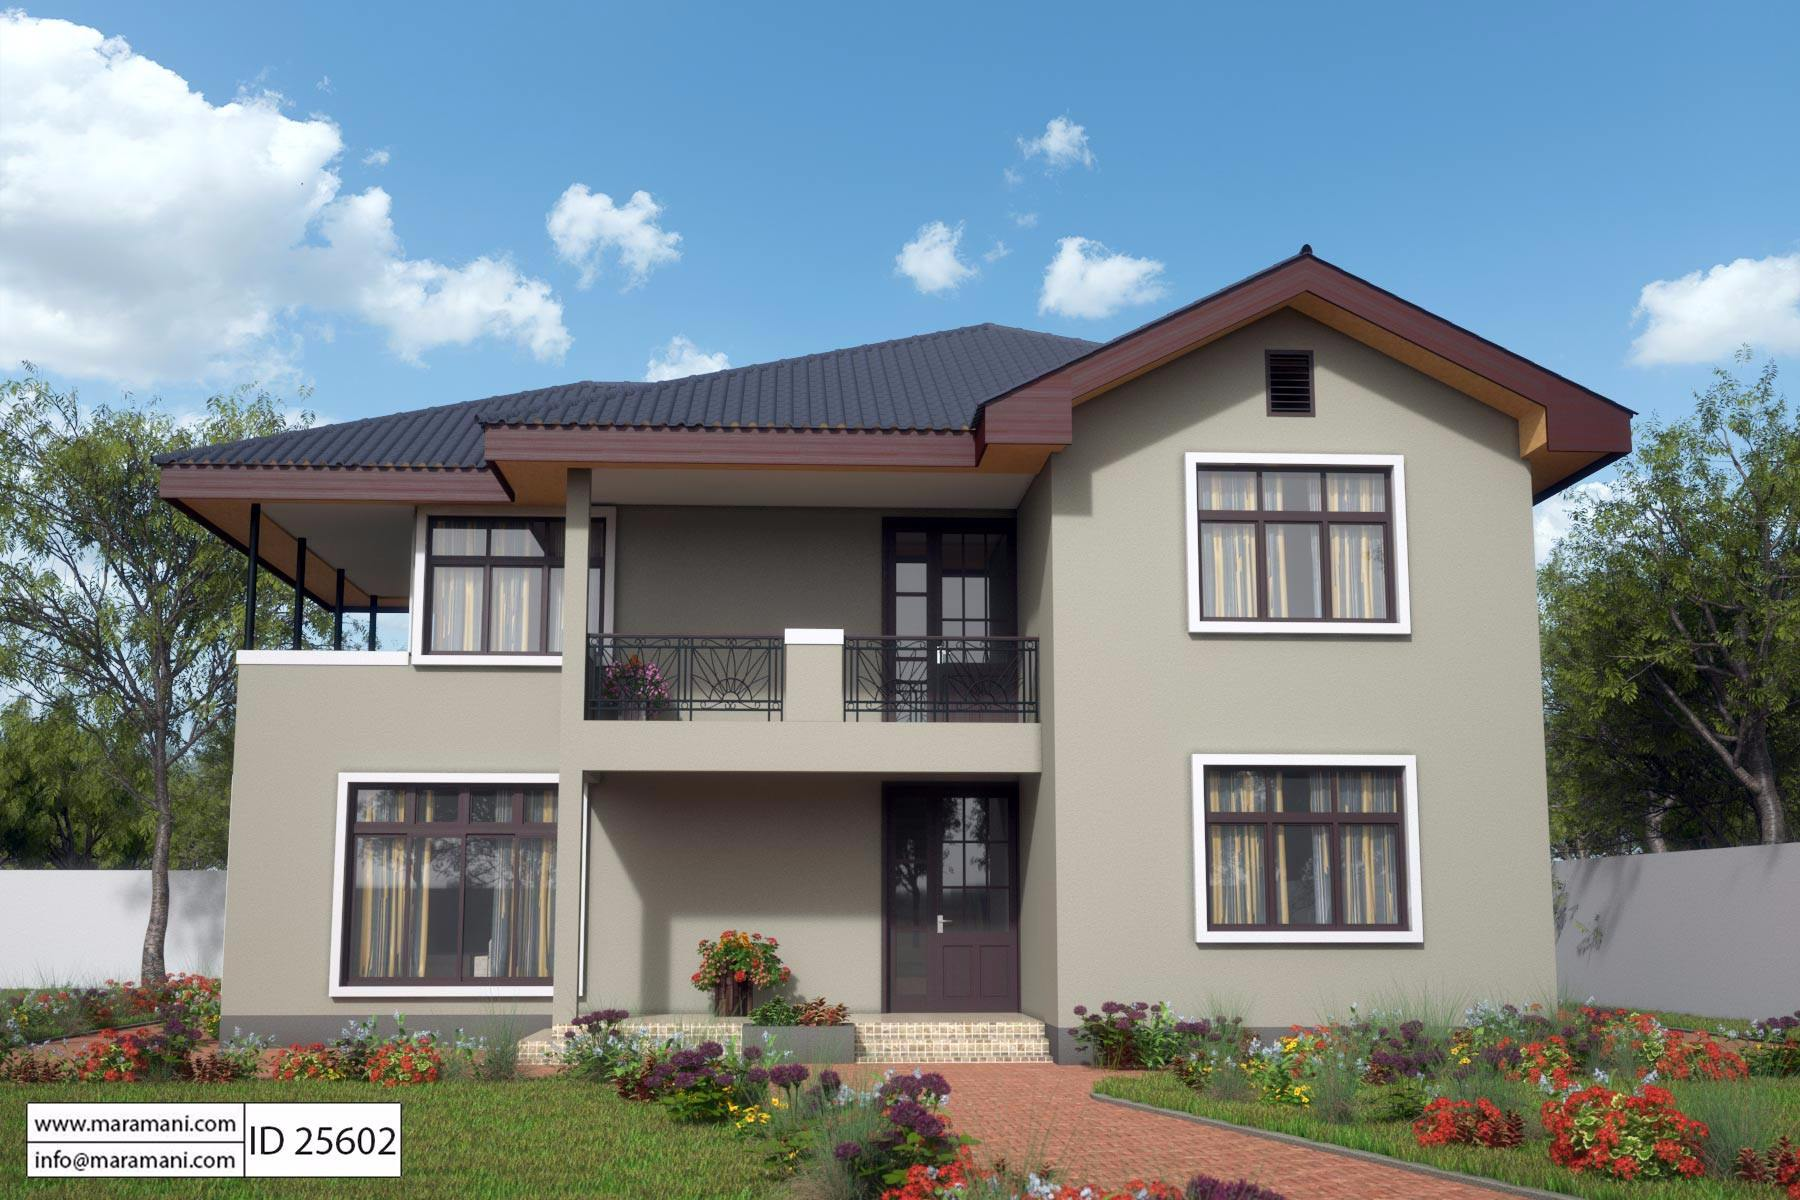 5 bedroom house design id 25602 house plans by maramani for 5 bedroom house designs